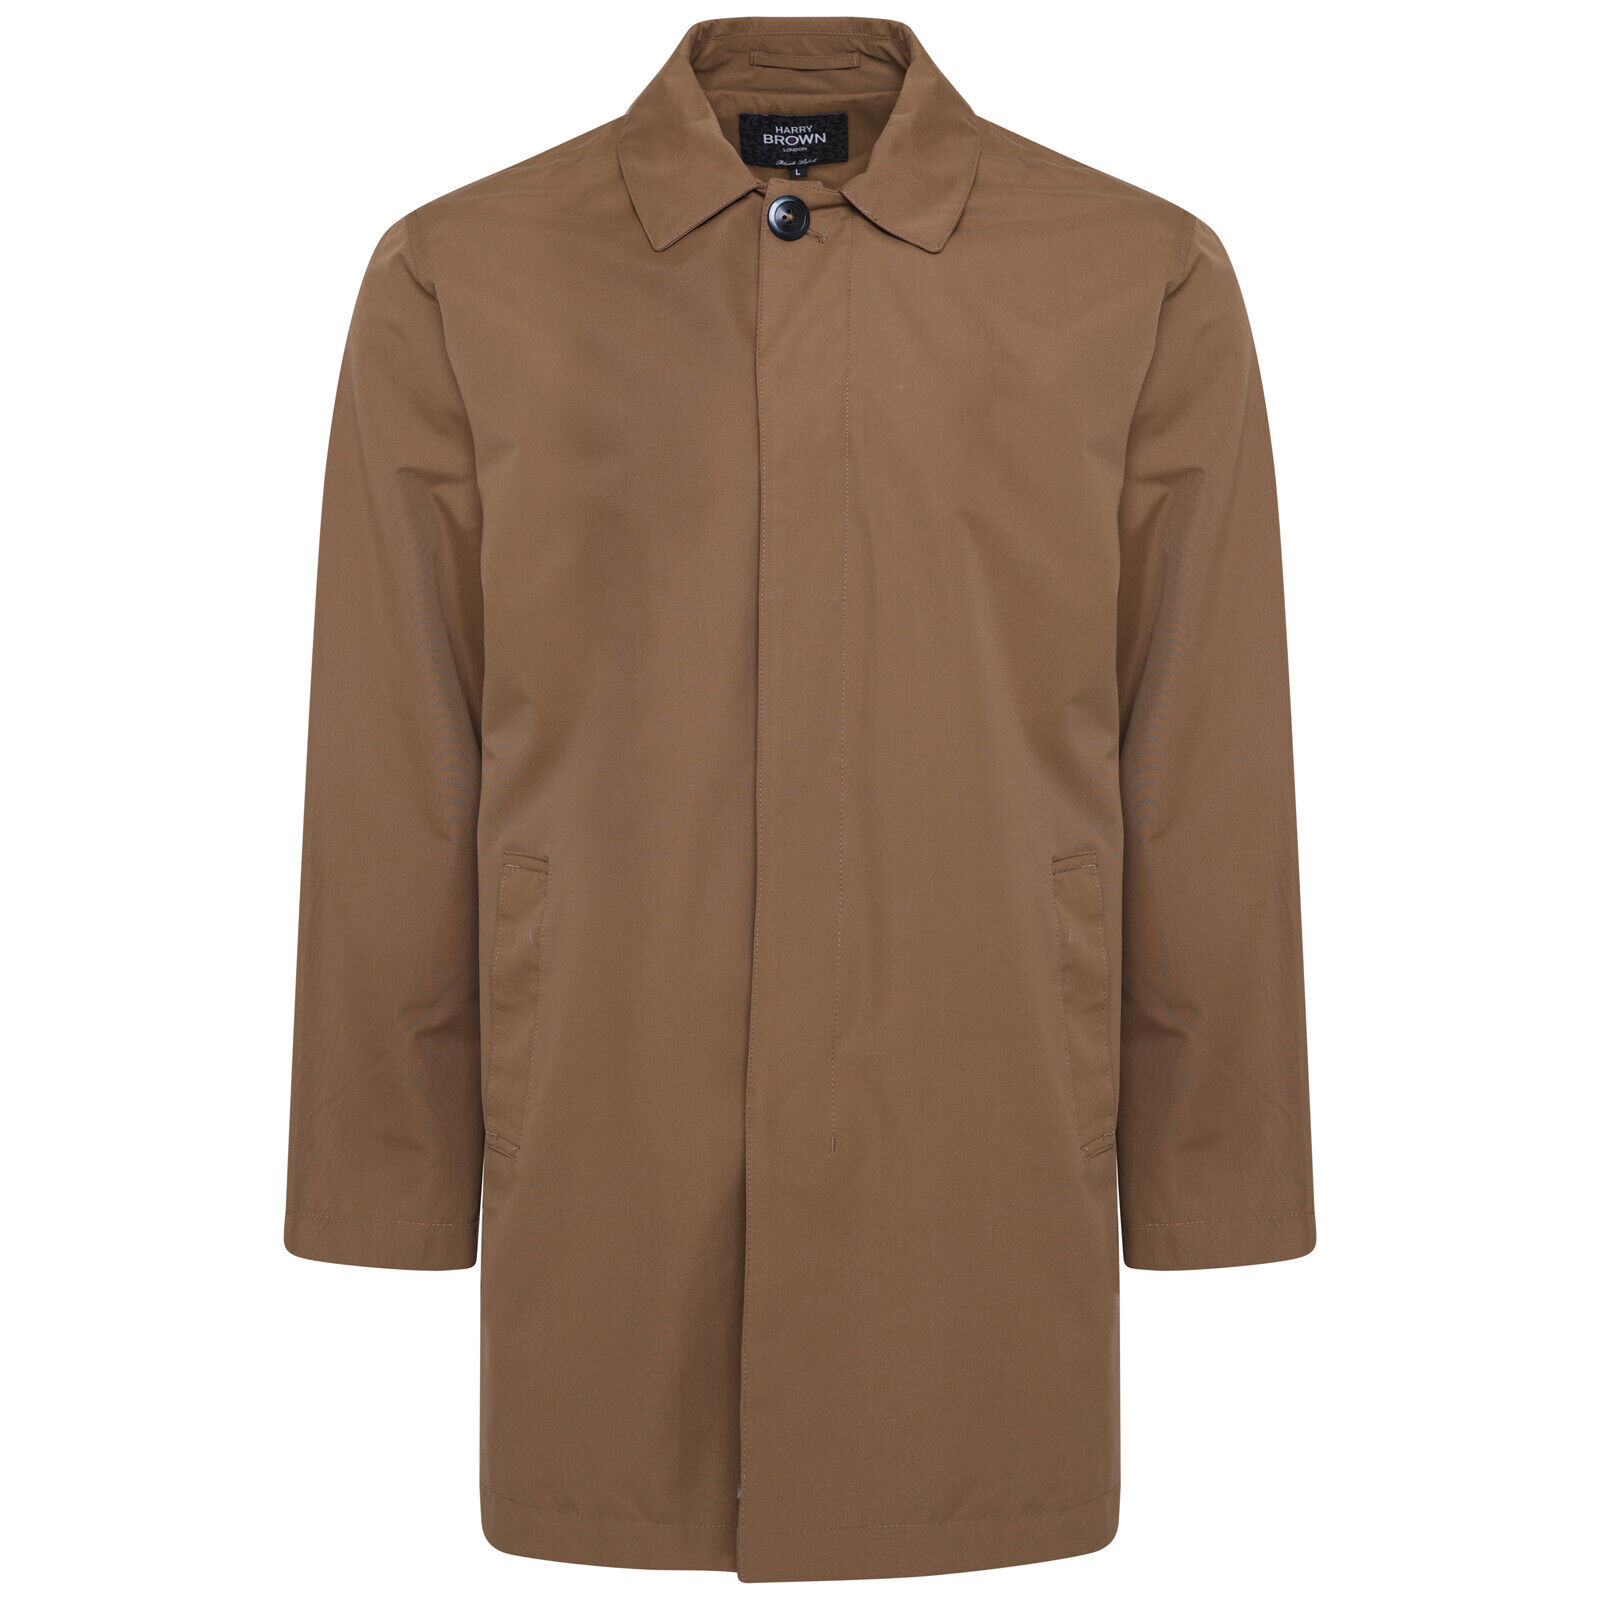 Harry Brown Single Breasted Big & Tall Trench Coat in Mud